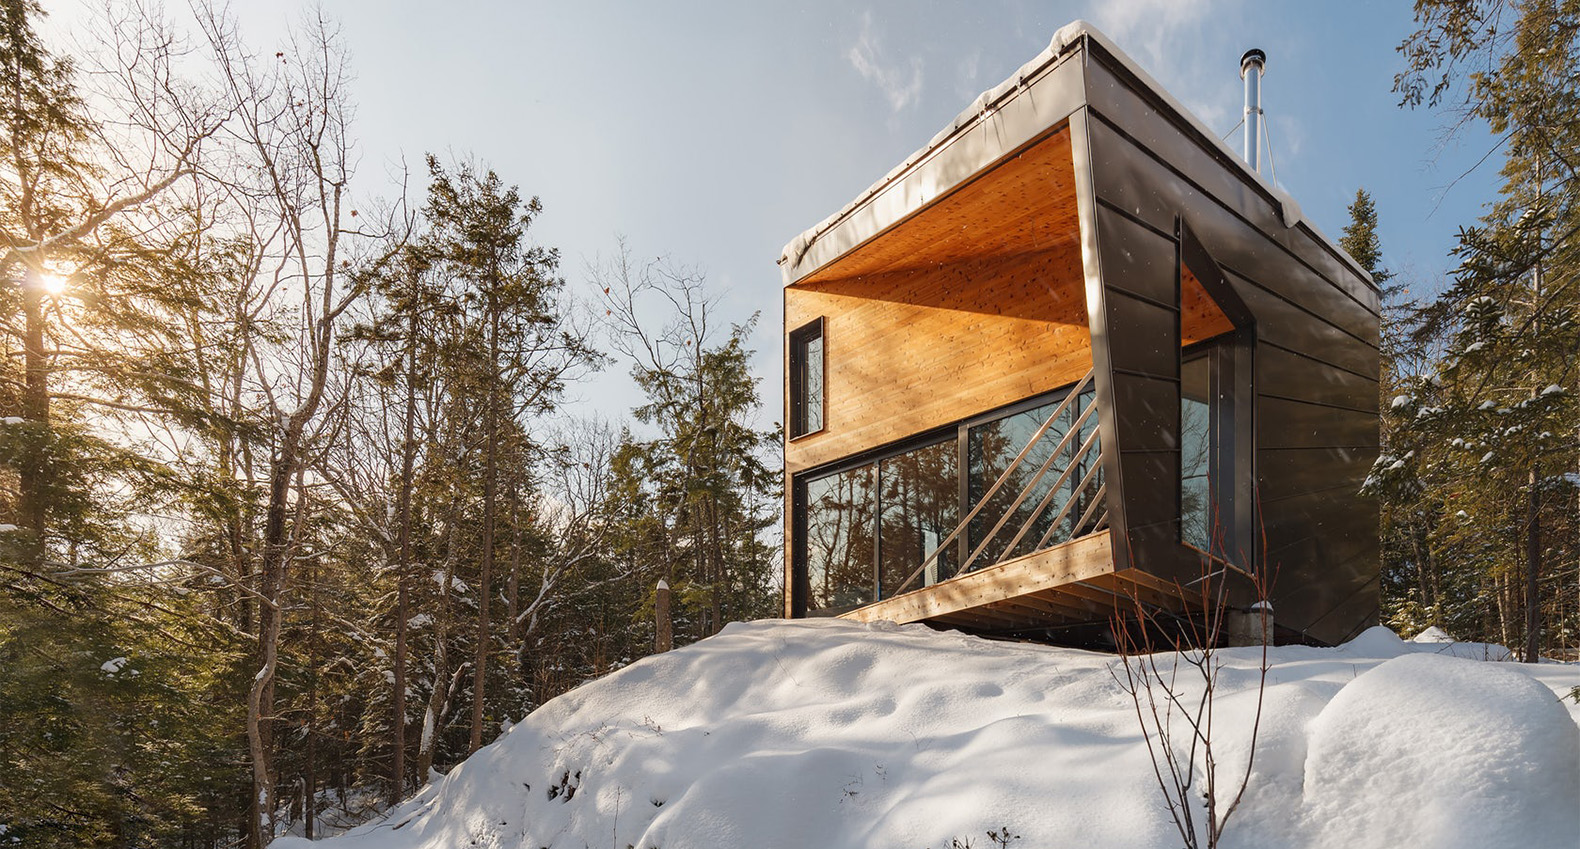 Prefab Tiny Cabin Perched On A Granite Rock To Minimize